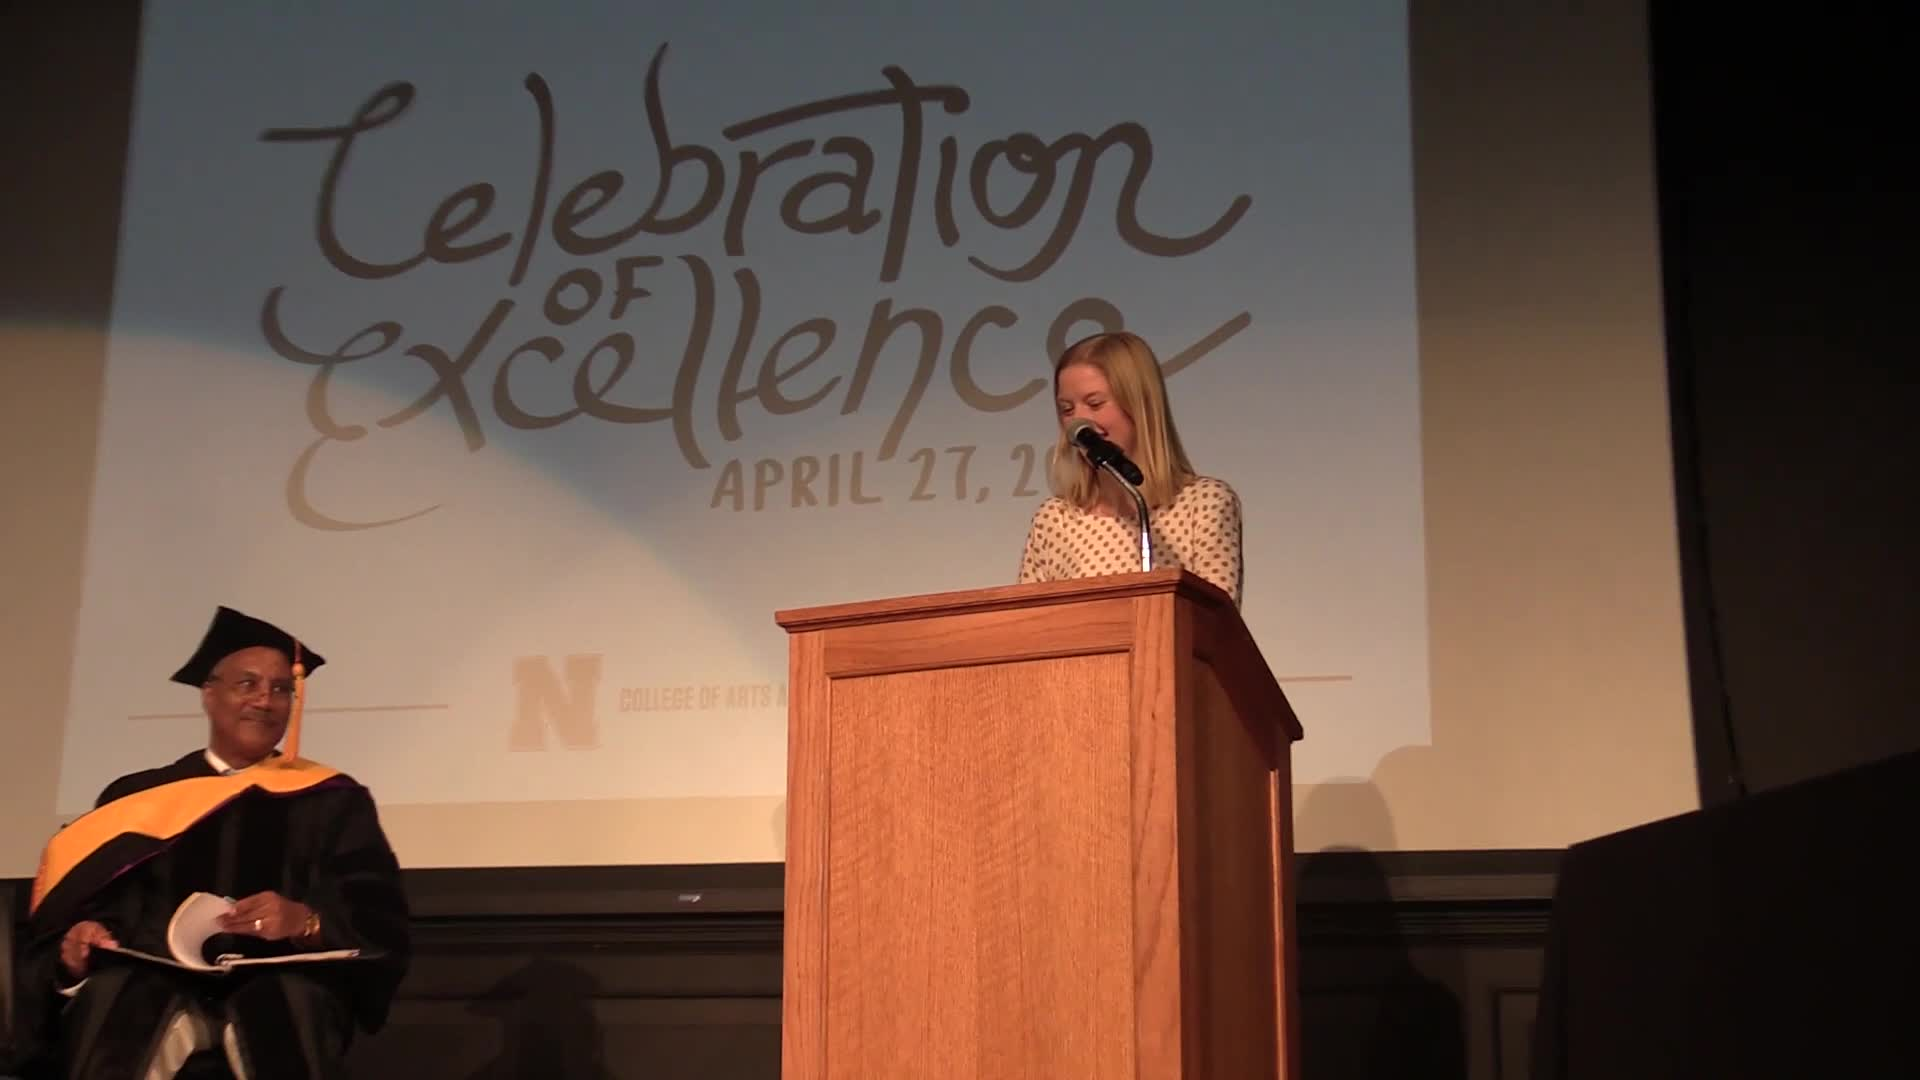 Mackenzie Strehle's senior reflection at Celebration of Excellence 2018